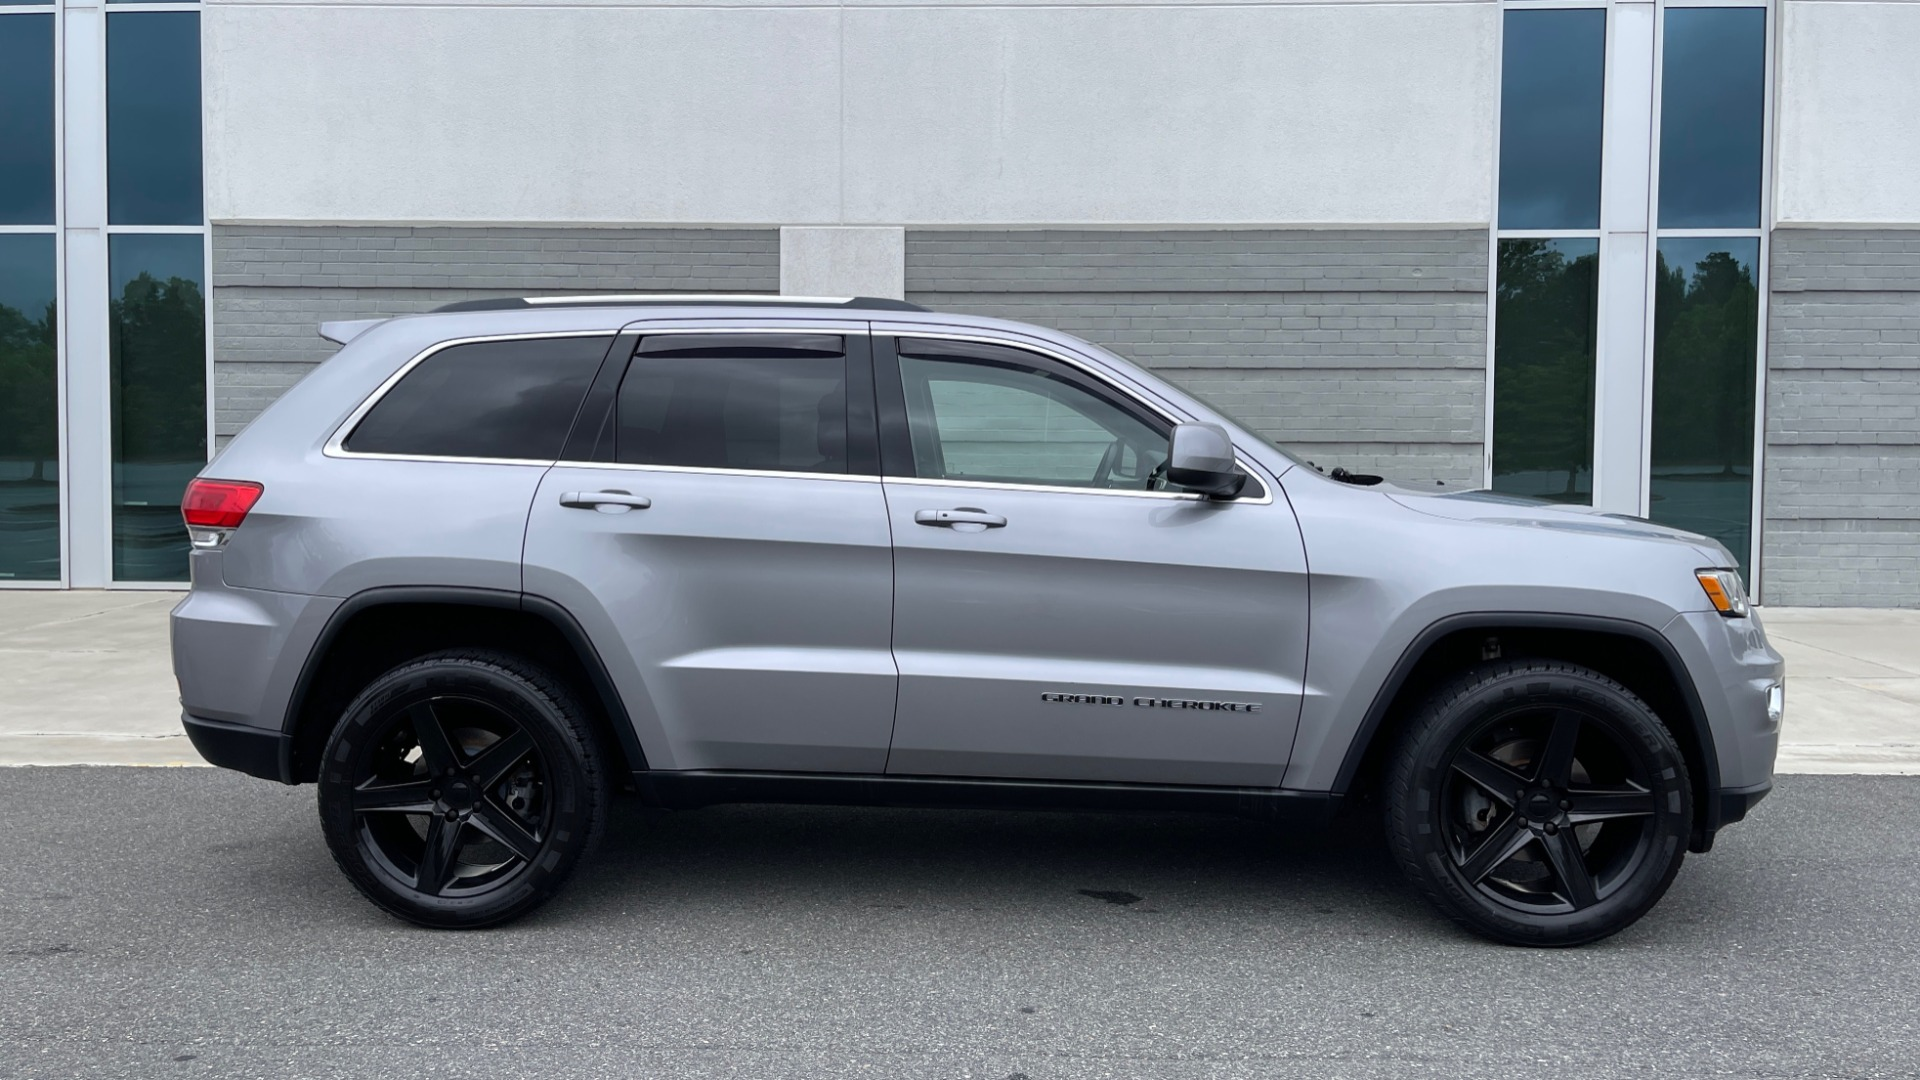 Used 2017 Jeep GRAND CHEROKEE LAREDO E 4X4 / KEYLESS-GO / 8.4IN TOUCH SCREEN / REARVIEW for sale $27,595 at Formula Imports in Charlotte NC 28227 7